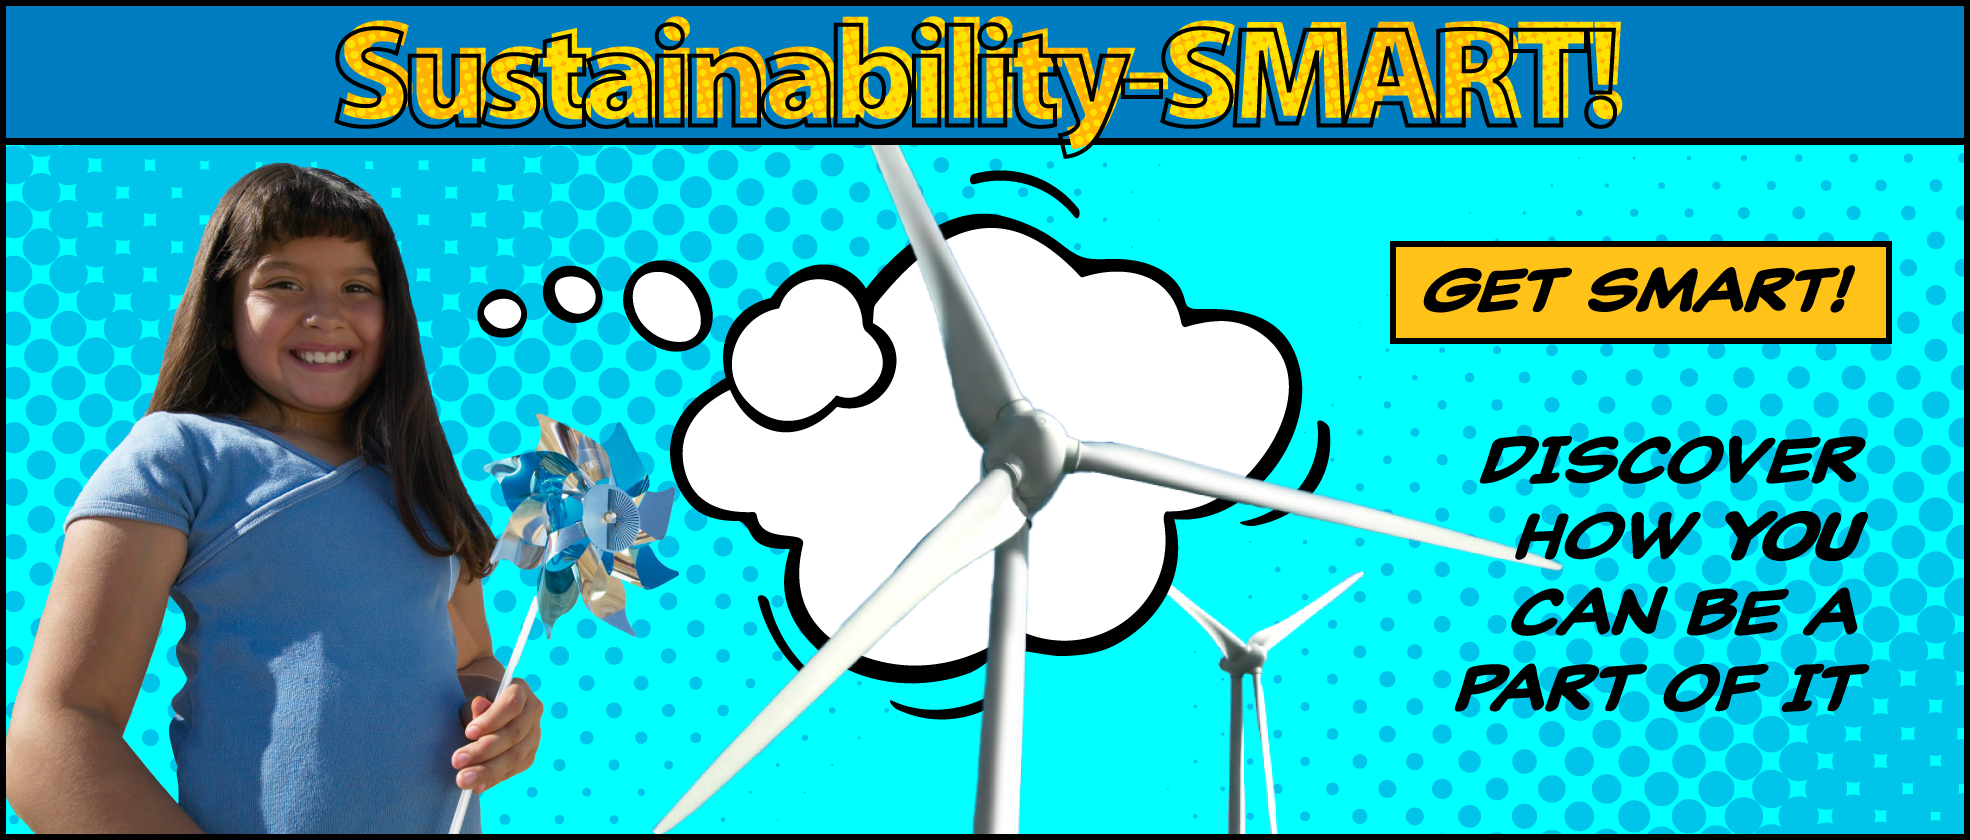 Sustainability-SMART: Get Smart! Discover how you can be a part of it